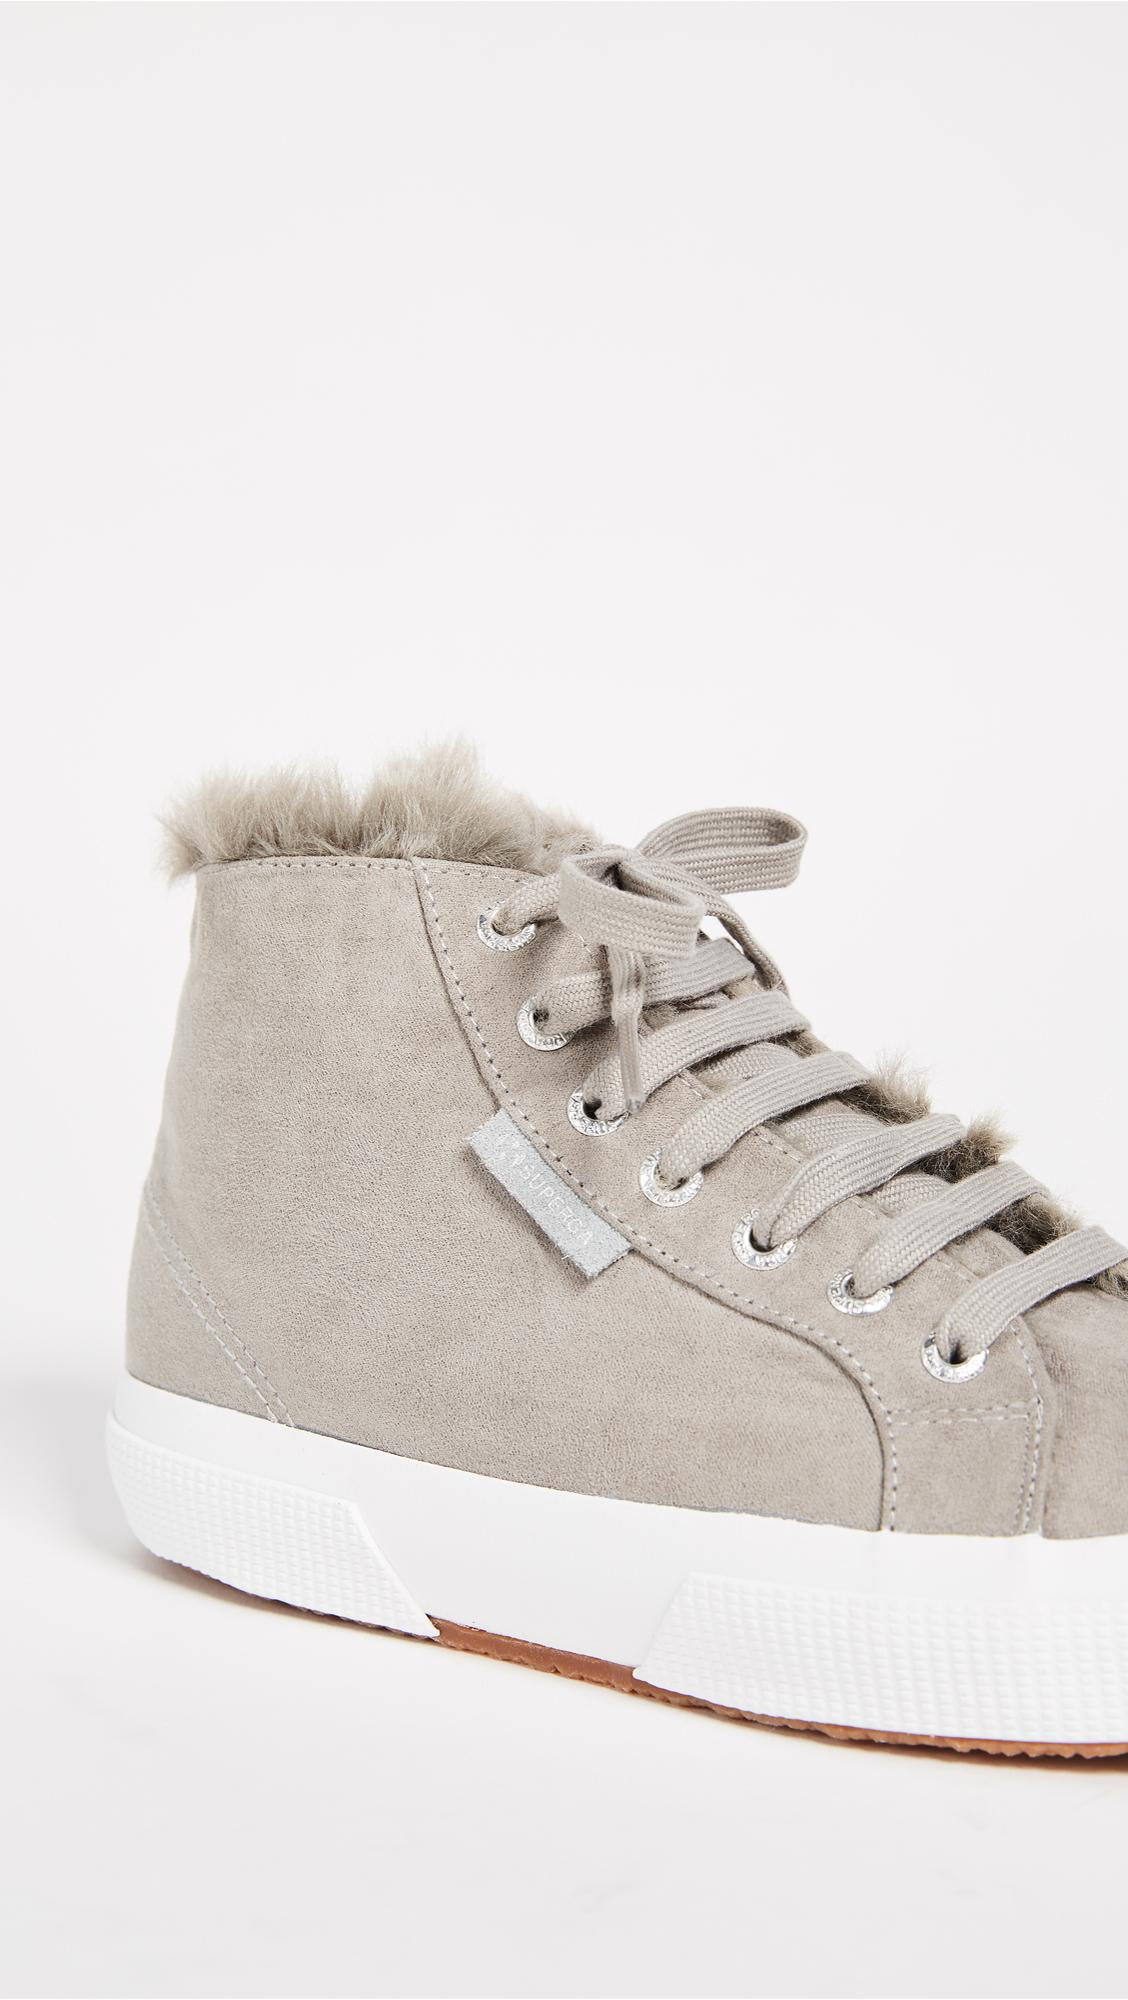 Superga 2795 Sherpa Lined High Top Sneakers in Grey (Grey)